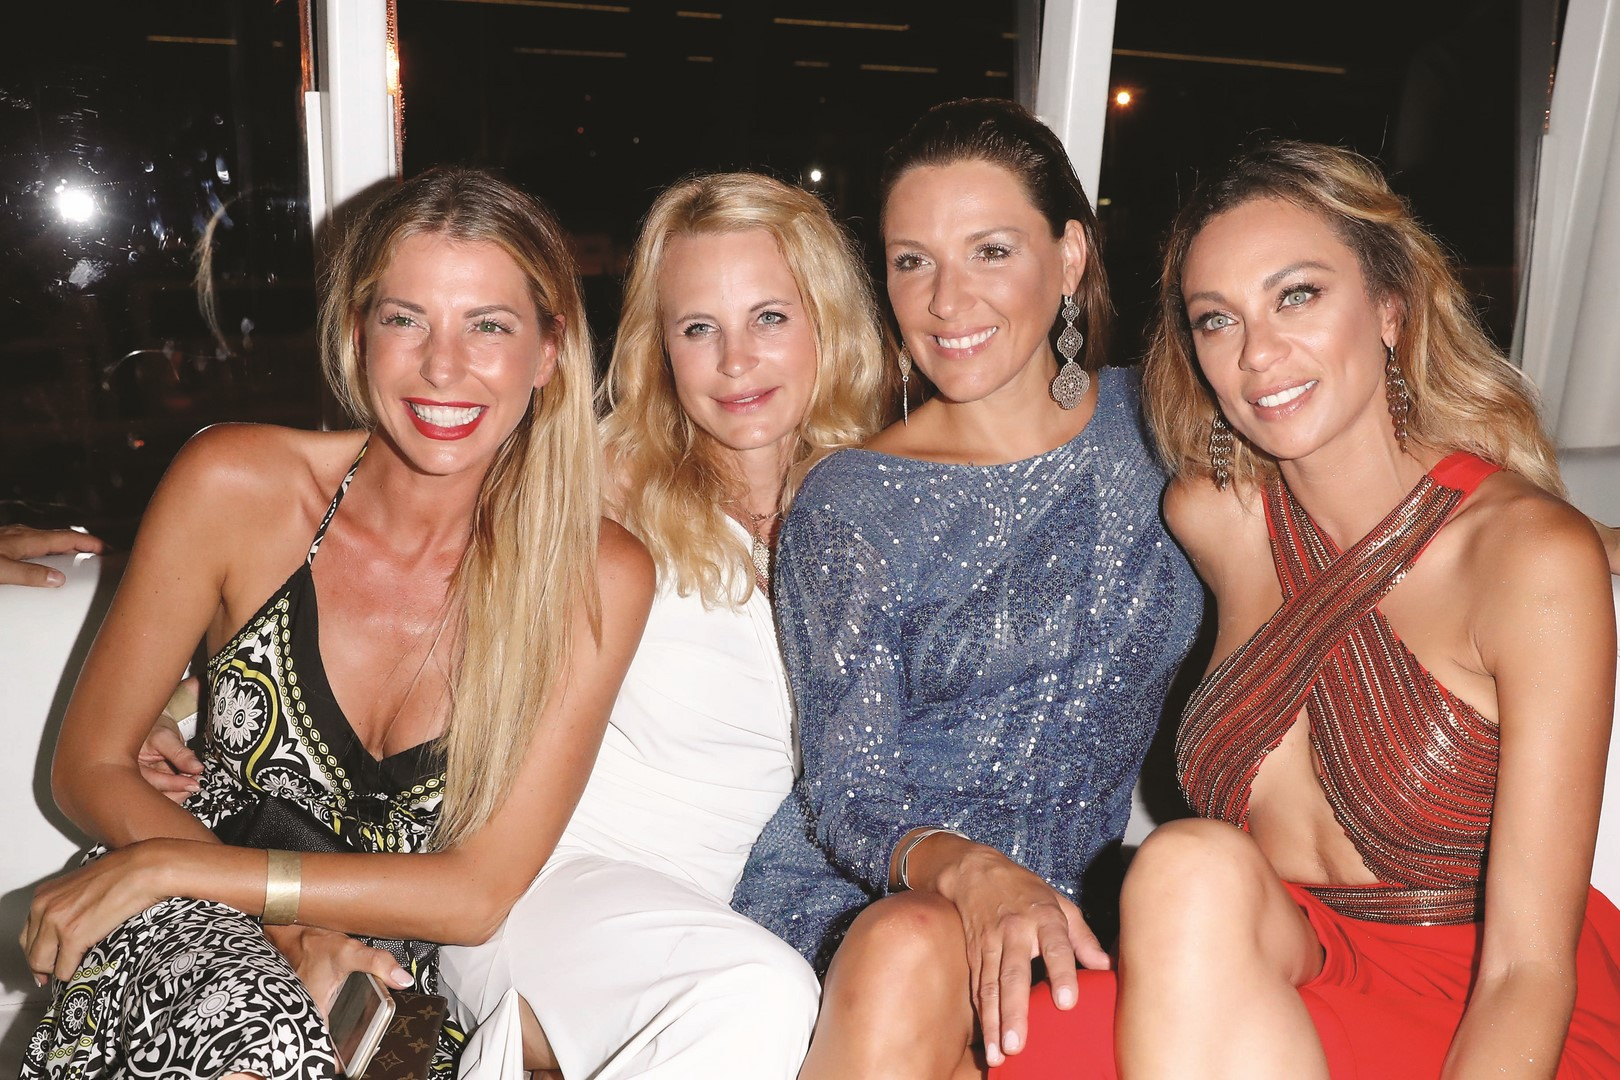 Remus Lifestyle Night Gäste: Giulia Siegel, Sonja Kiefer, Simone Ballack and Lilly Becker (Photo by Franziska Krug/Getty Images)